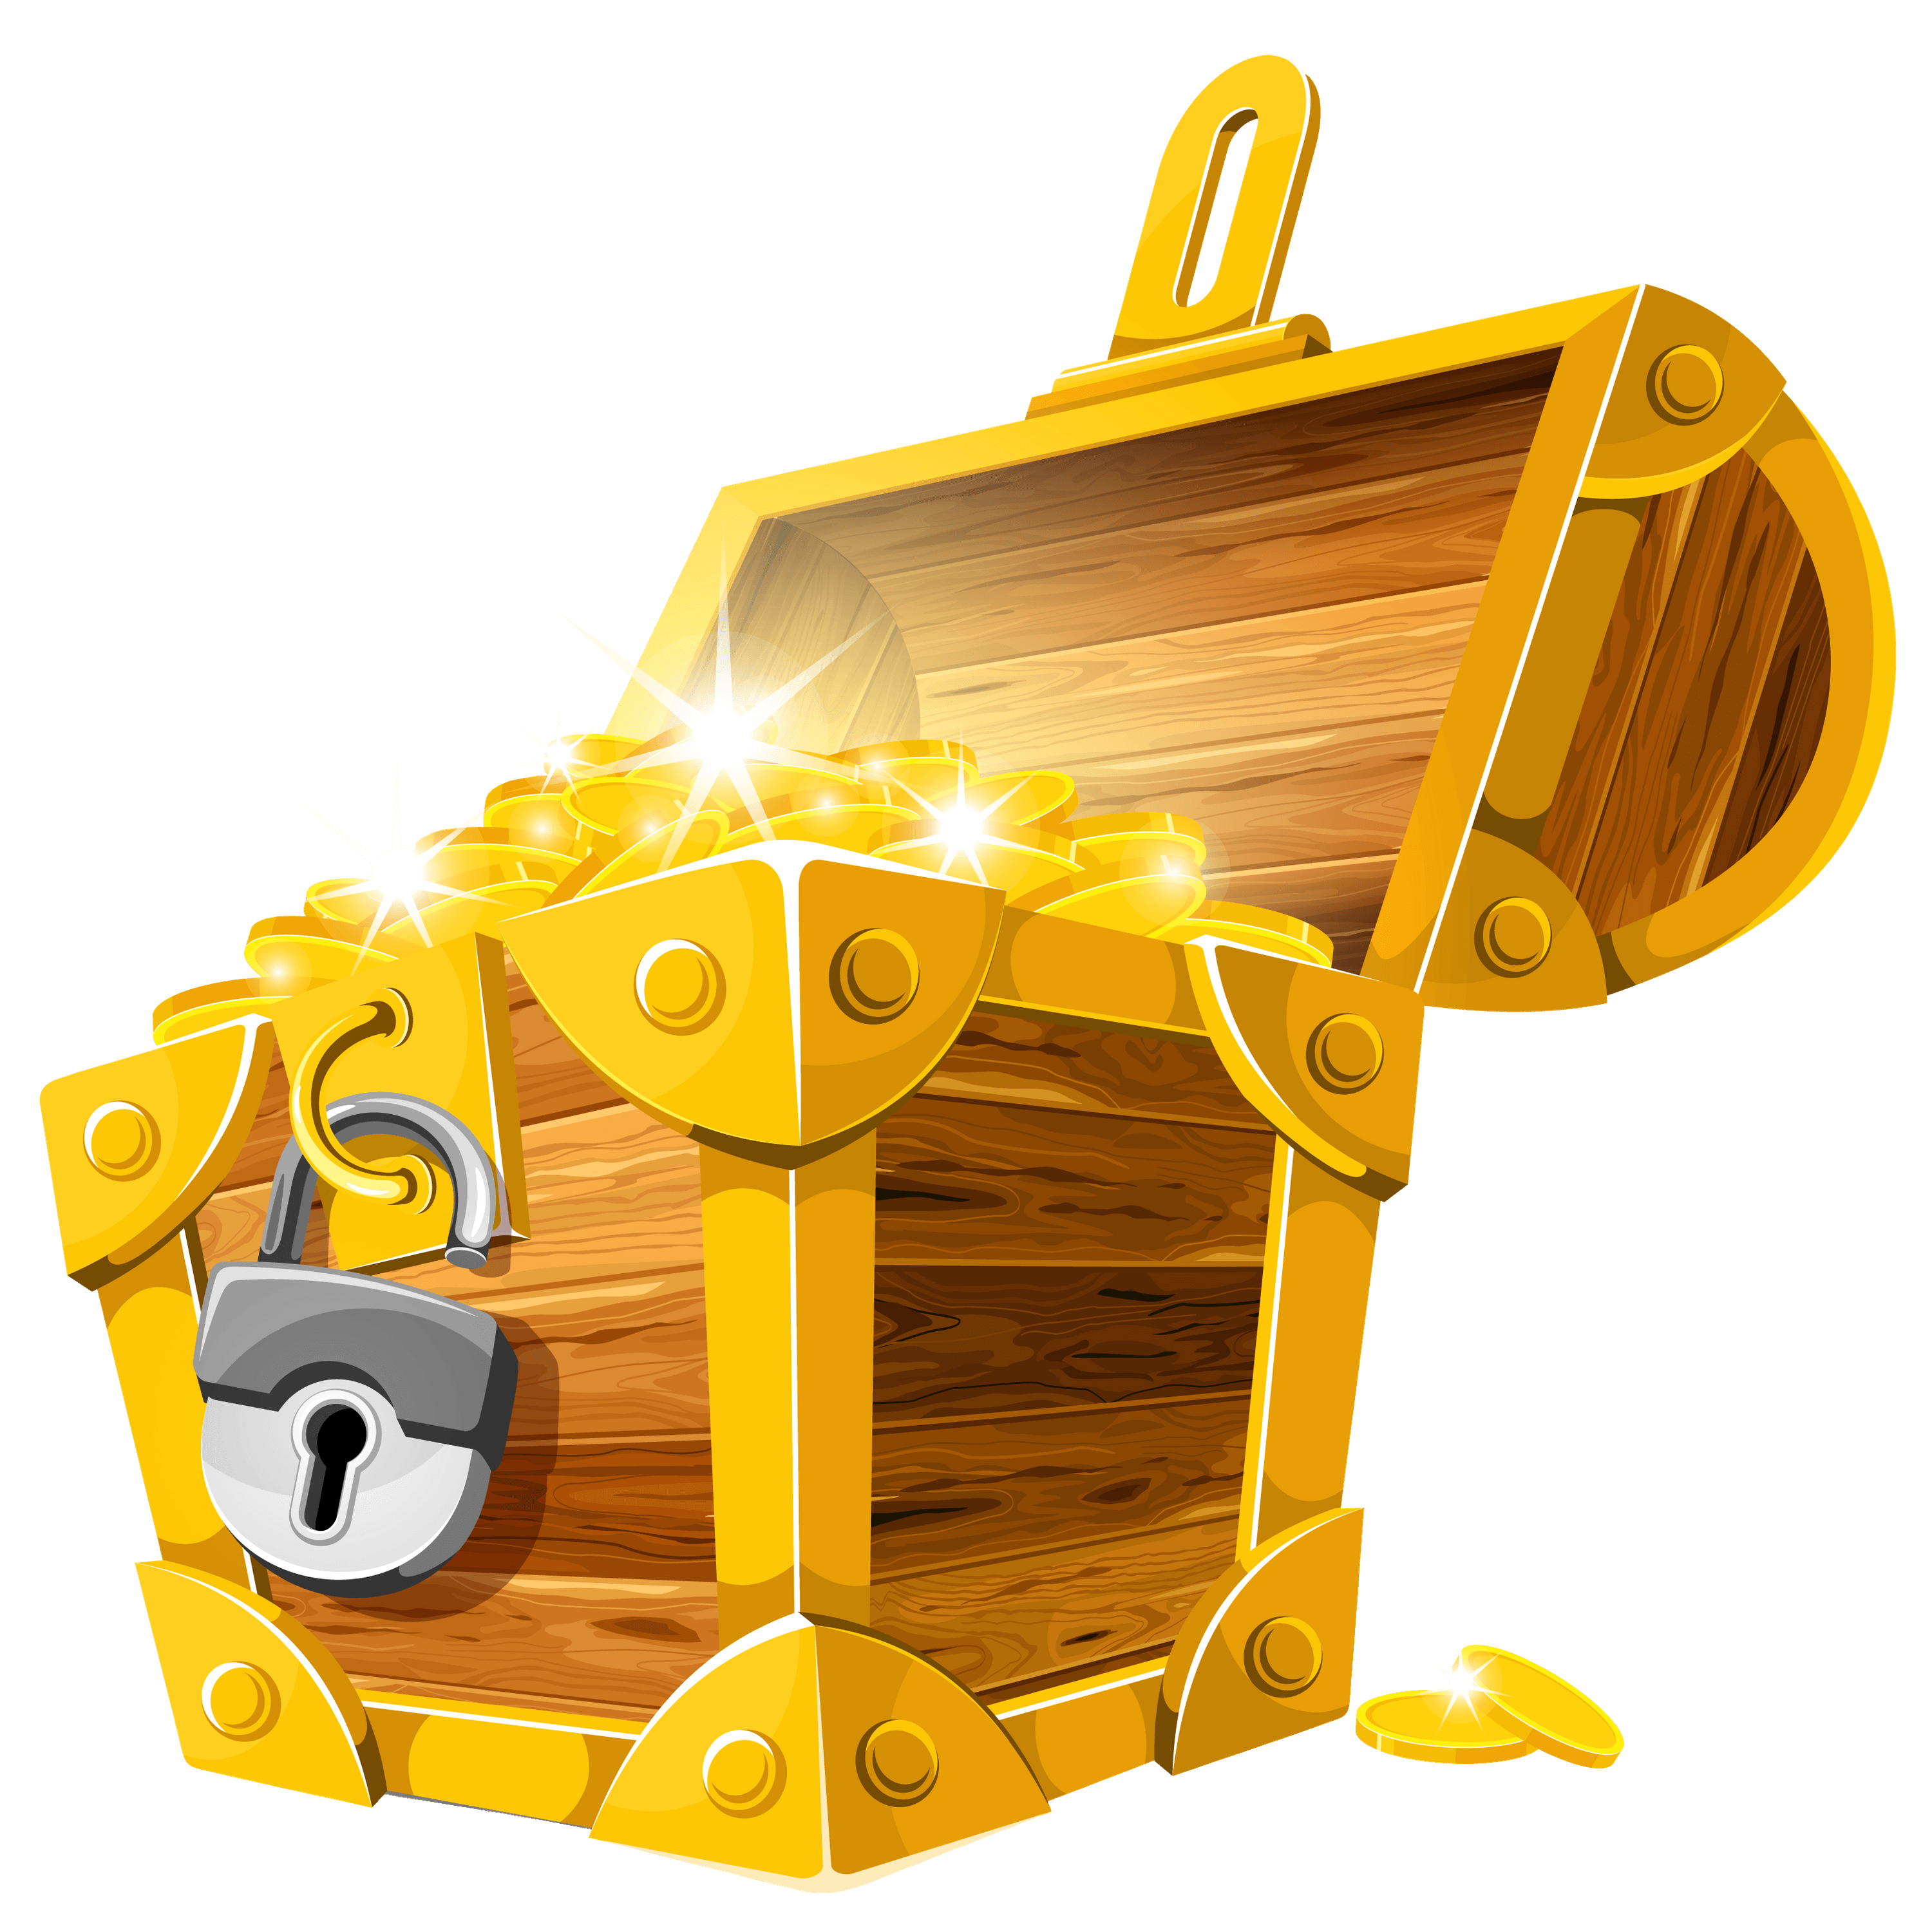 Open Chest With Lock transparent PNG.